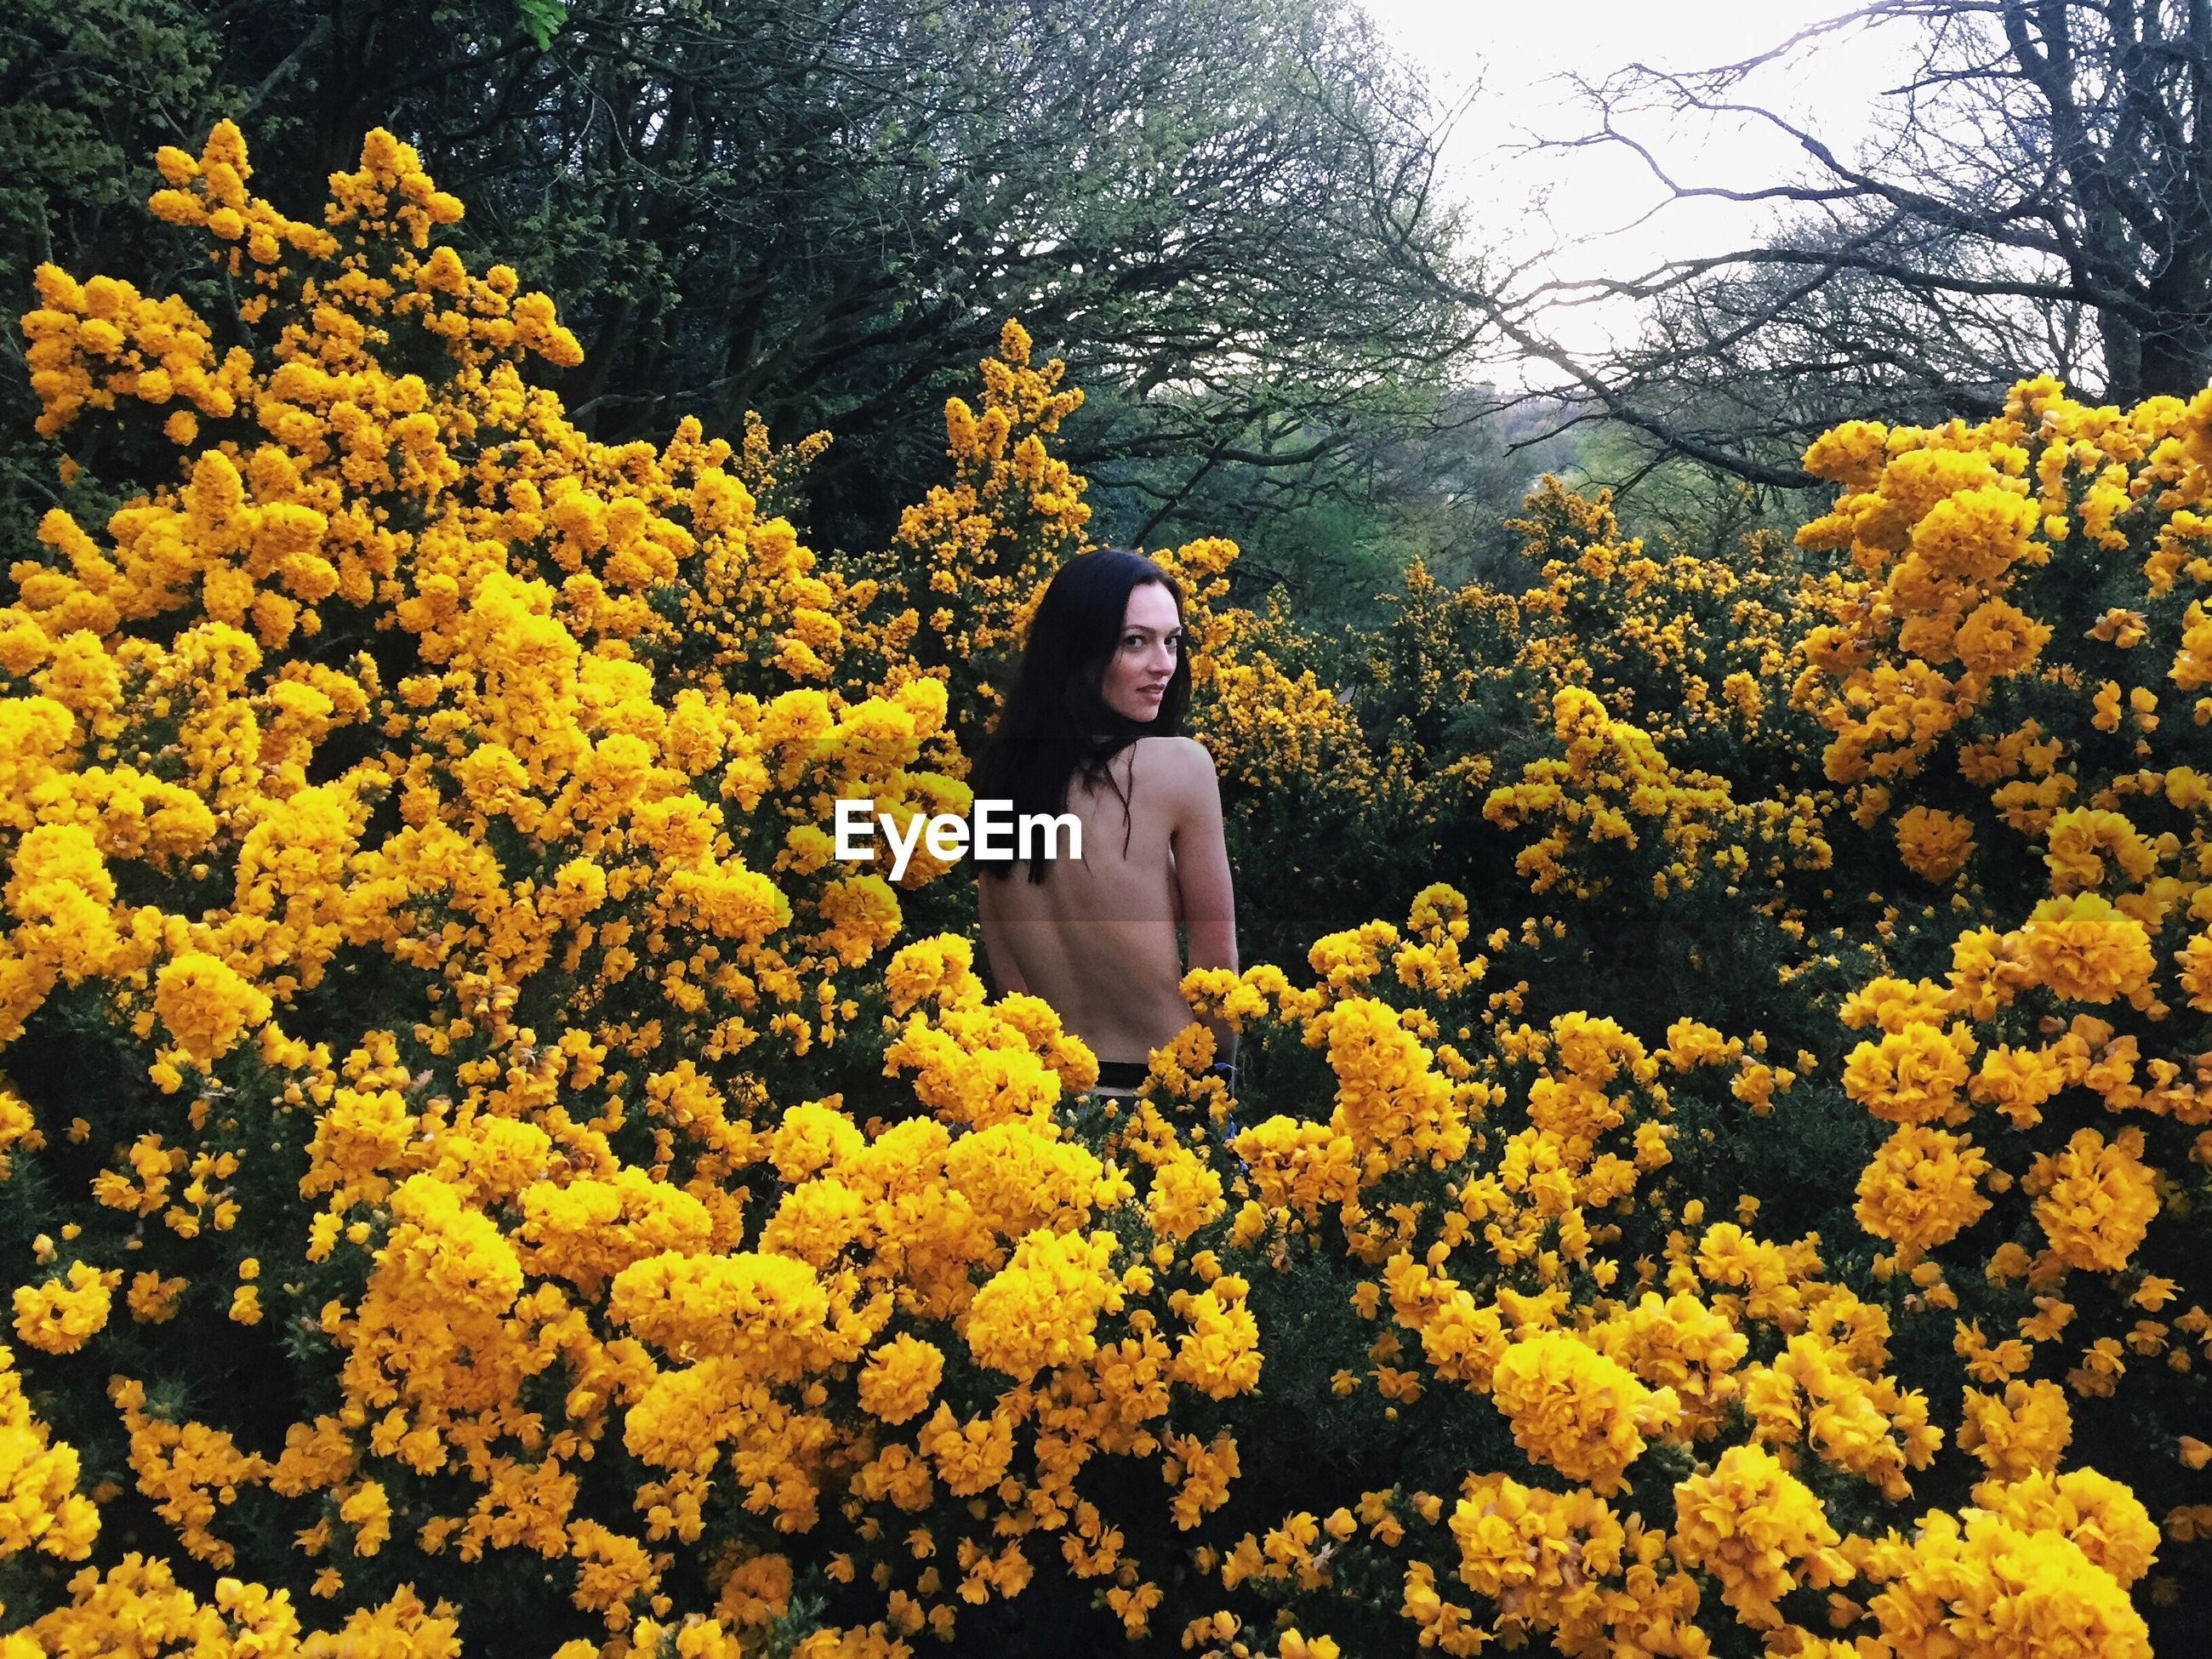 flower, yellow, tree, lifestyles, leisure activity, growth, young adult, casual clothing, beauty in nature, nature, standing, freshness, person, fragility, young women, season, full length, three quarter length